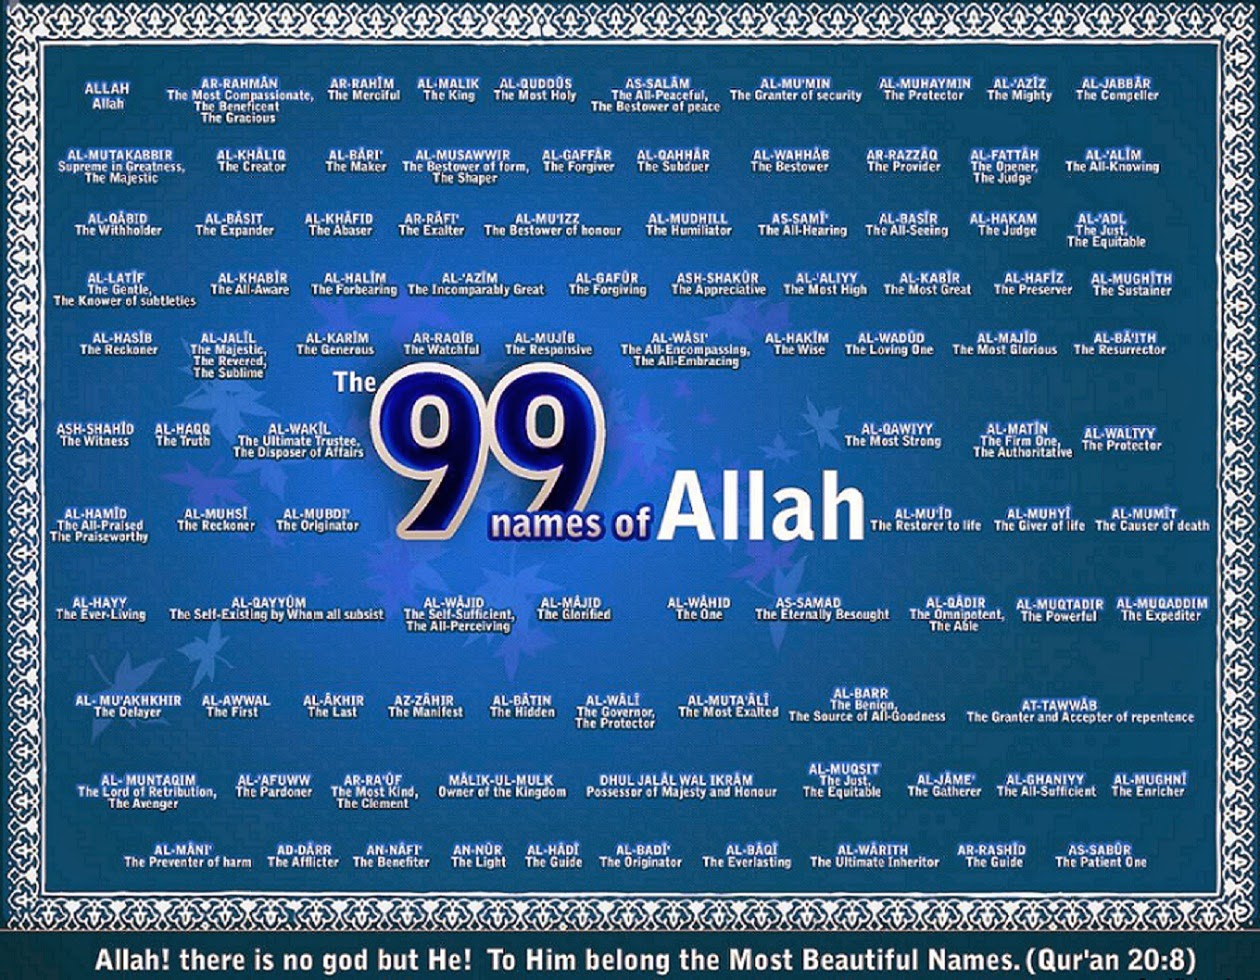 Great Wallpaper Name English - 99+Names+Of+Allah+in+English+Wallpaper  HD_43727.jpg